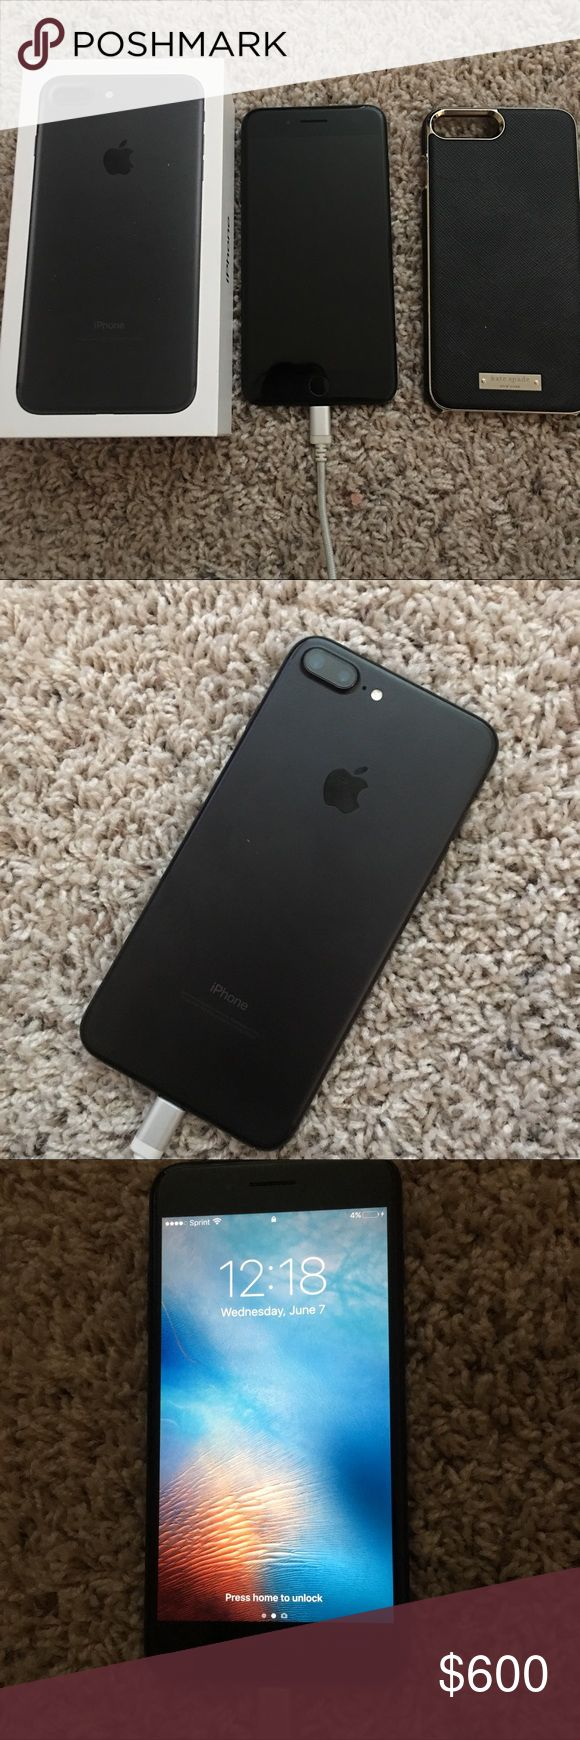 iPhone 7 Plus 128gb Sprint Impeccable condition, iPhone 7 Plus Matte Black, 128gb, cleaned with box, Kate Spade Case also sold separately $40. Bundle with phone $600 Apple Other